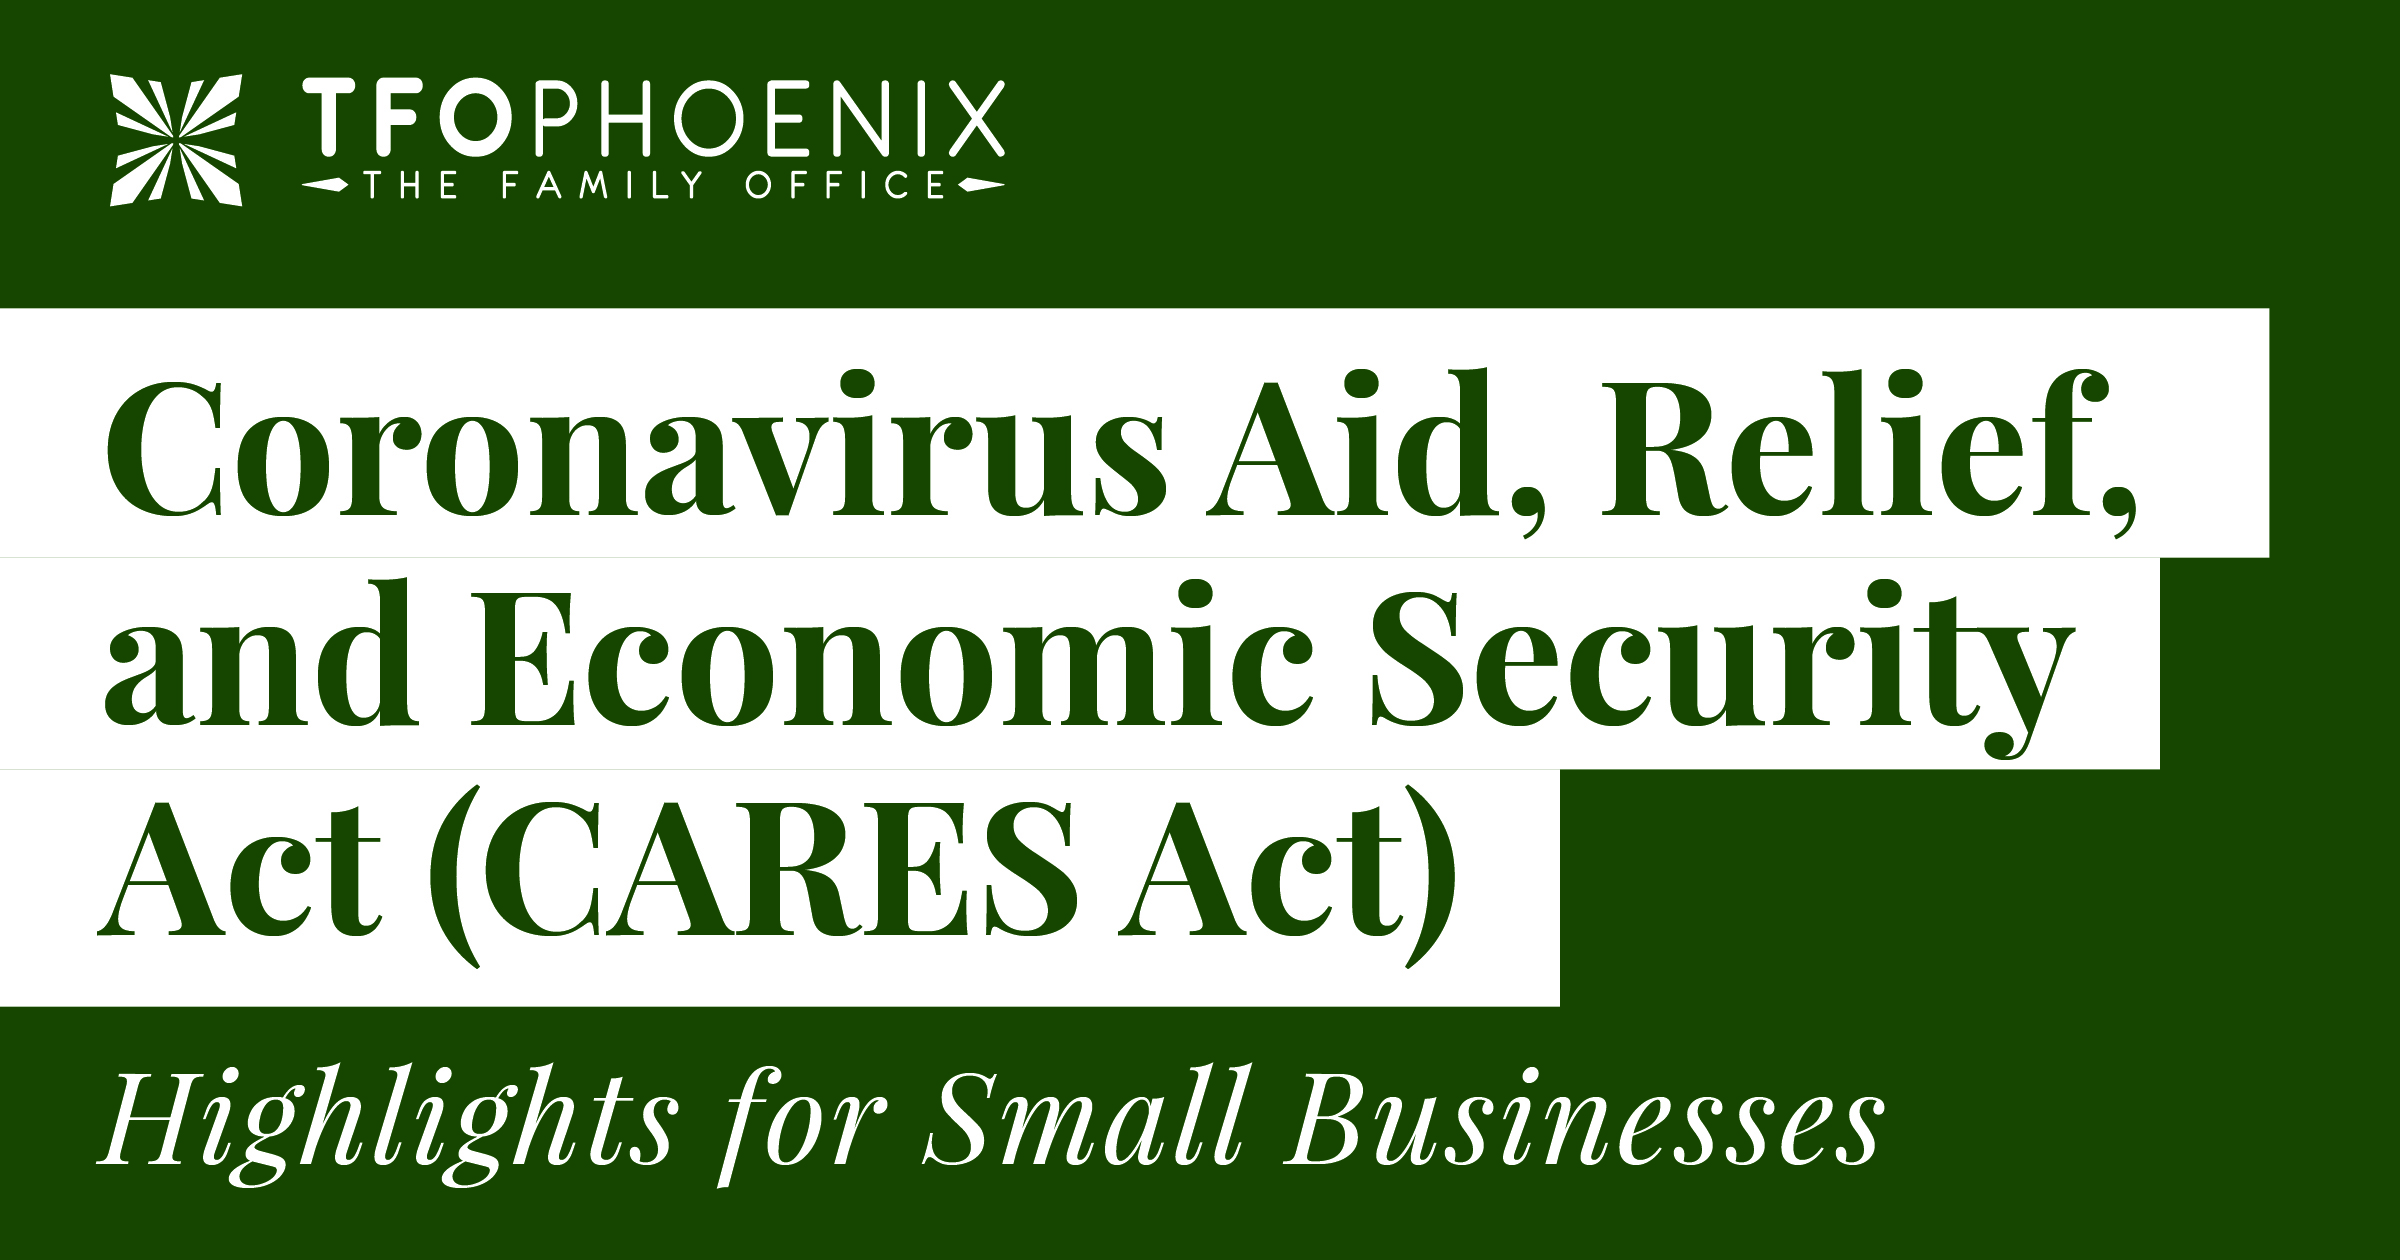 Coronavirus Aid, Relief, and Economic Security Act (CARES Act) – Highlights for Small Businesses